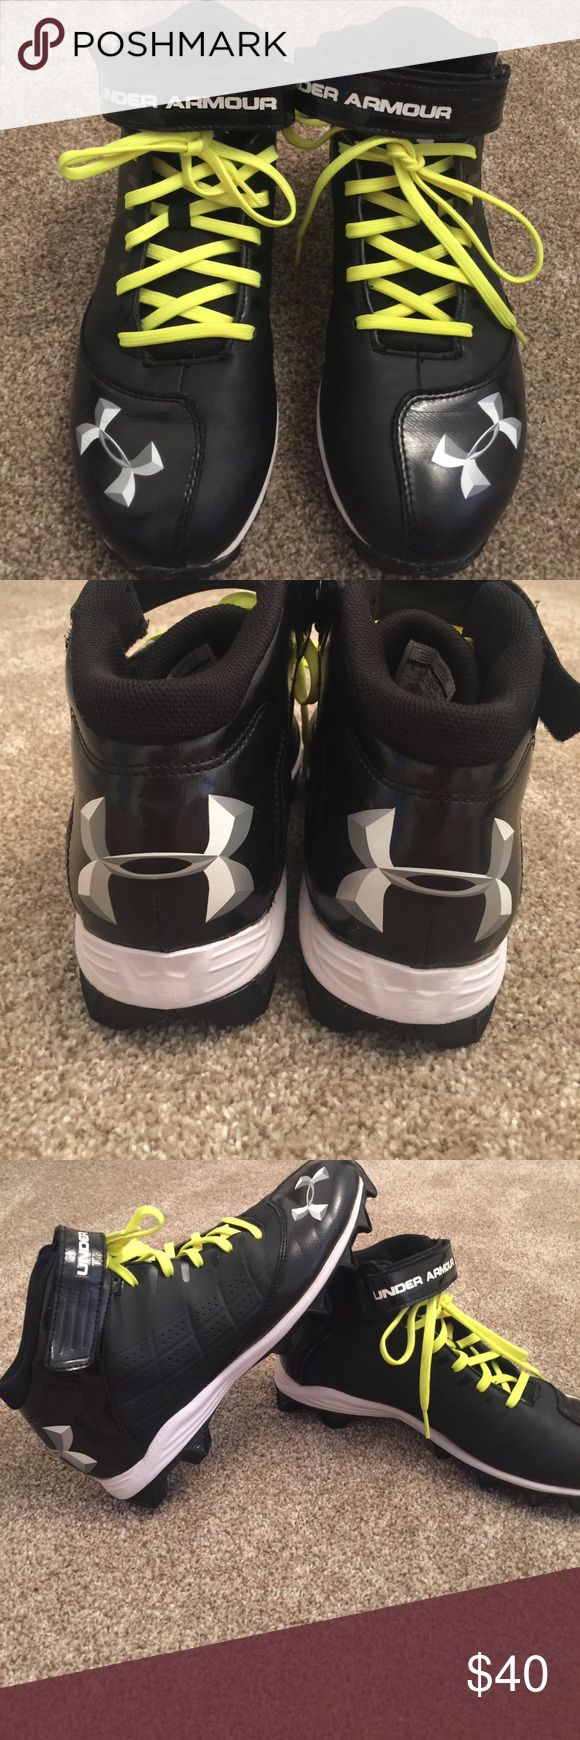 Men's AU HIgh Top Baseball Cleats - 9 Men's Black High Top Under Armour Baseball Cleats with ankle strap, rubber bottoms and fluorescent green laces - Size 9 - worn twice and in Perfect Condition.  Comes from a very clean smoke-free home. Under Armour Shoes Athletic Shoes